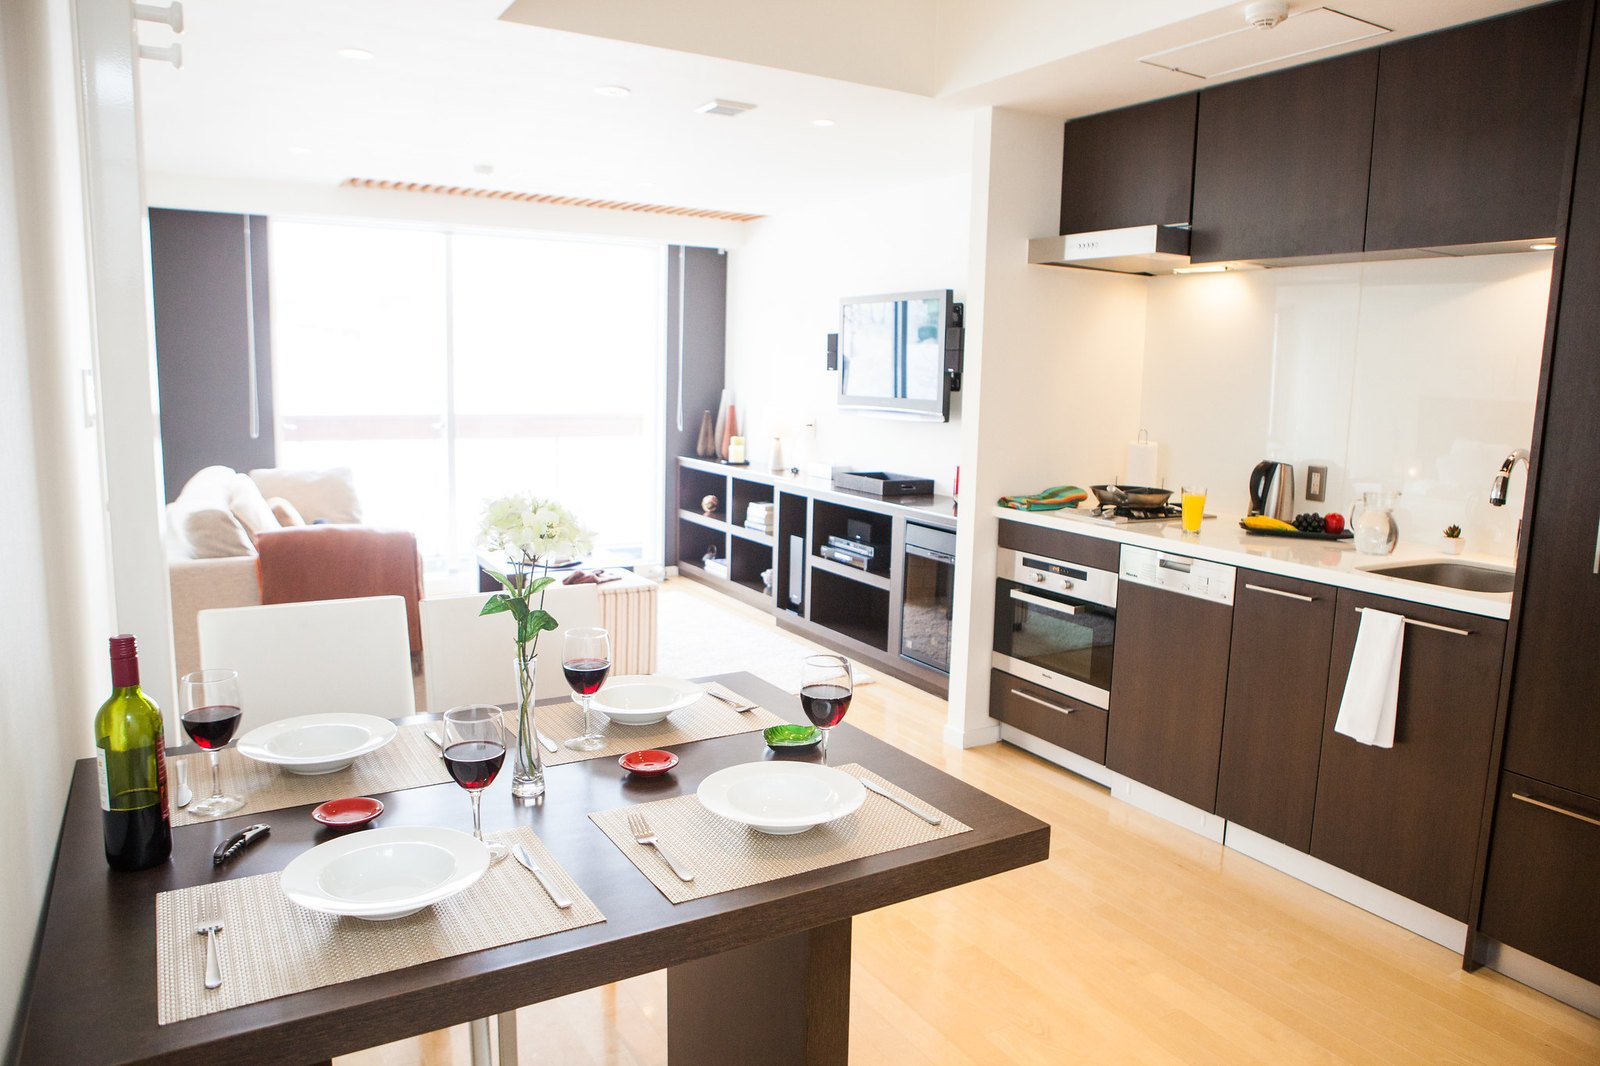 The kitchen, living and dining areas of a 1 bedroom apartment at Alpen Ridge apartments in Niseko, Japan.